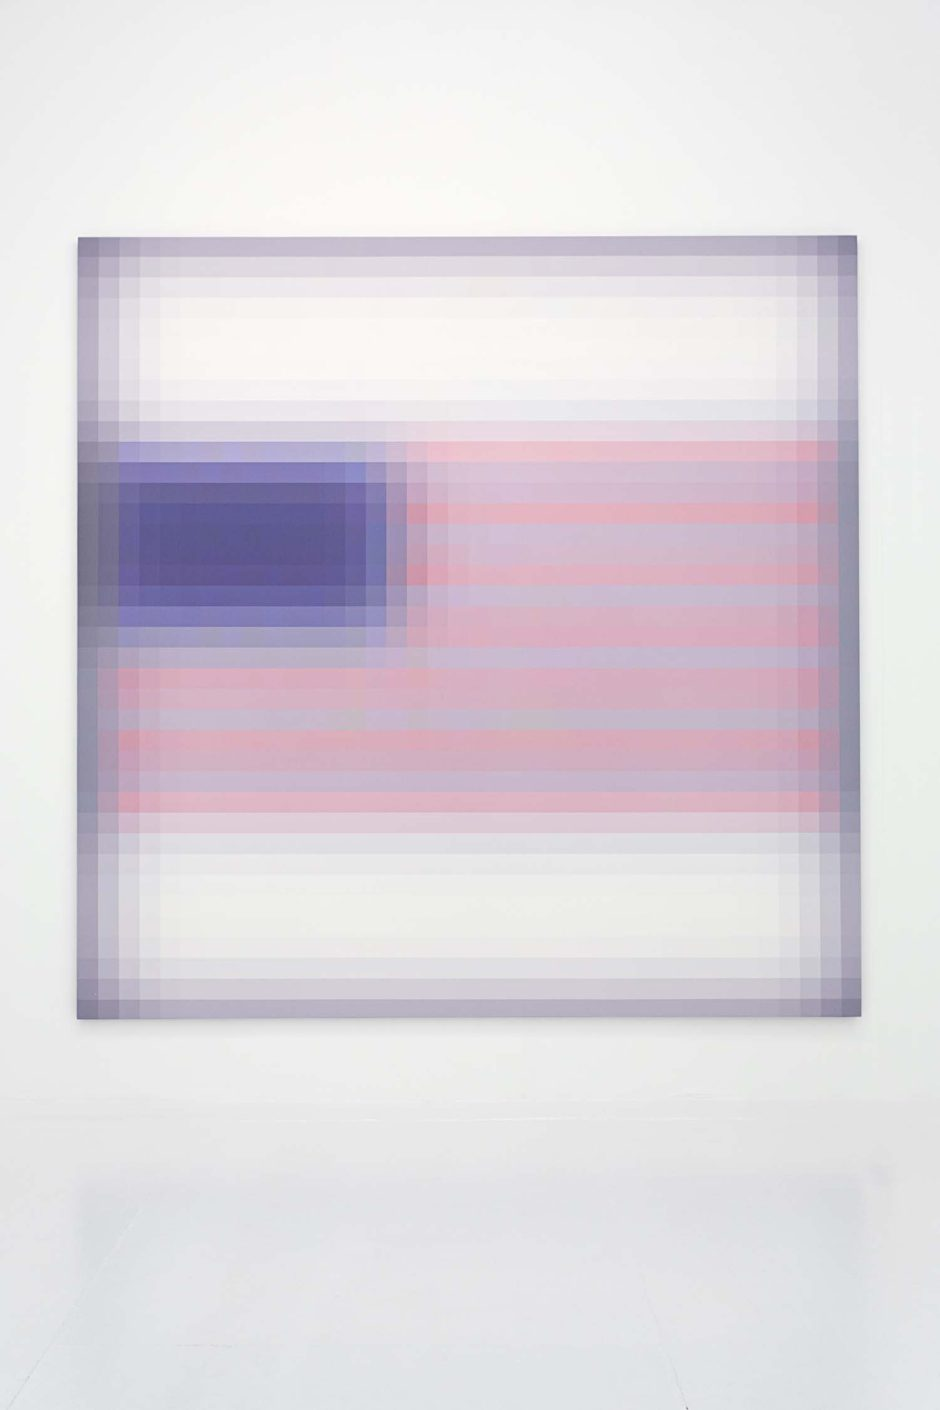 "Mark Flood, ""The Grayson Flag"", 2015, Inkjet print on canvas, 102 x 102 inches, 259.1 x 259.1 cm"